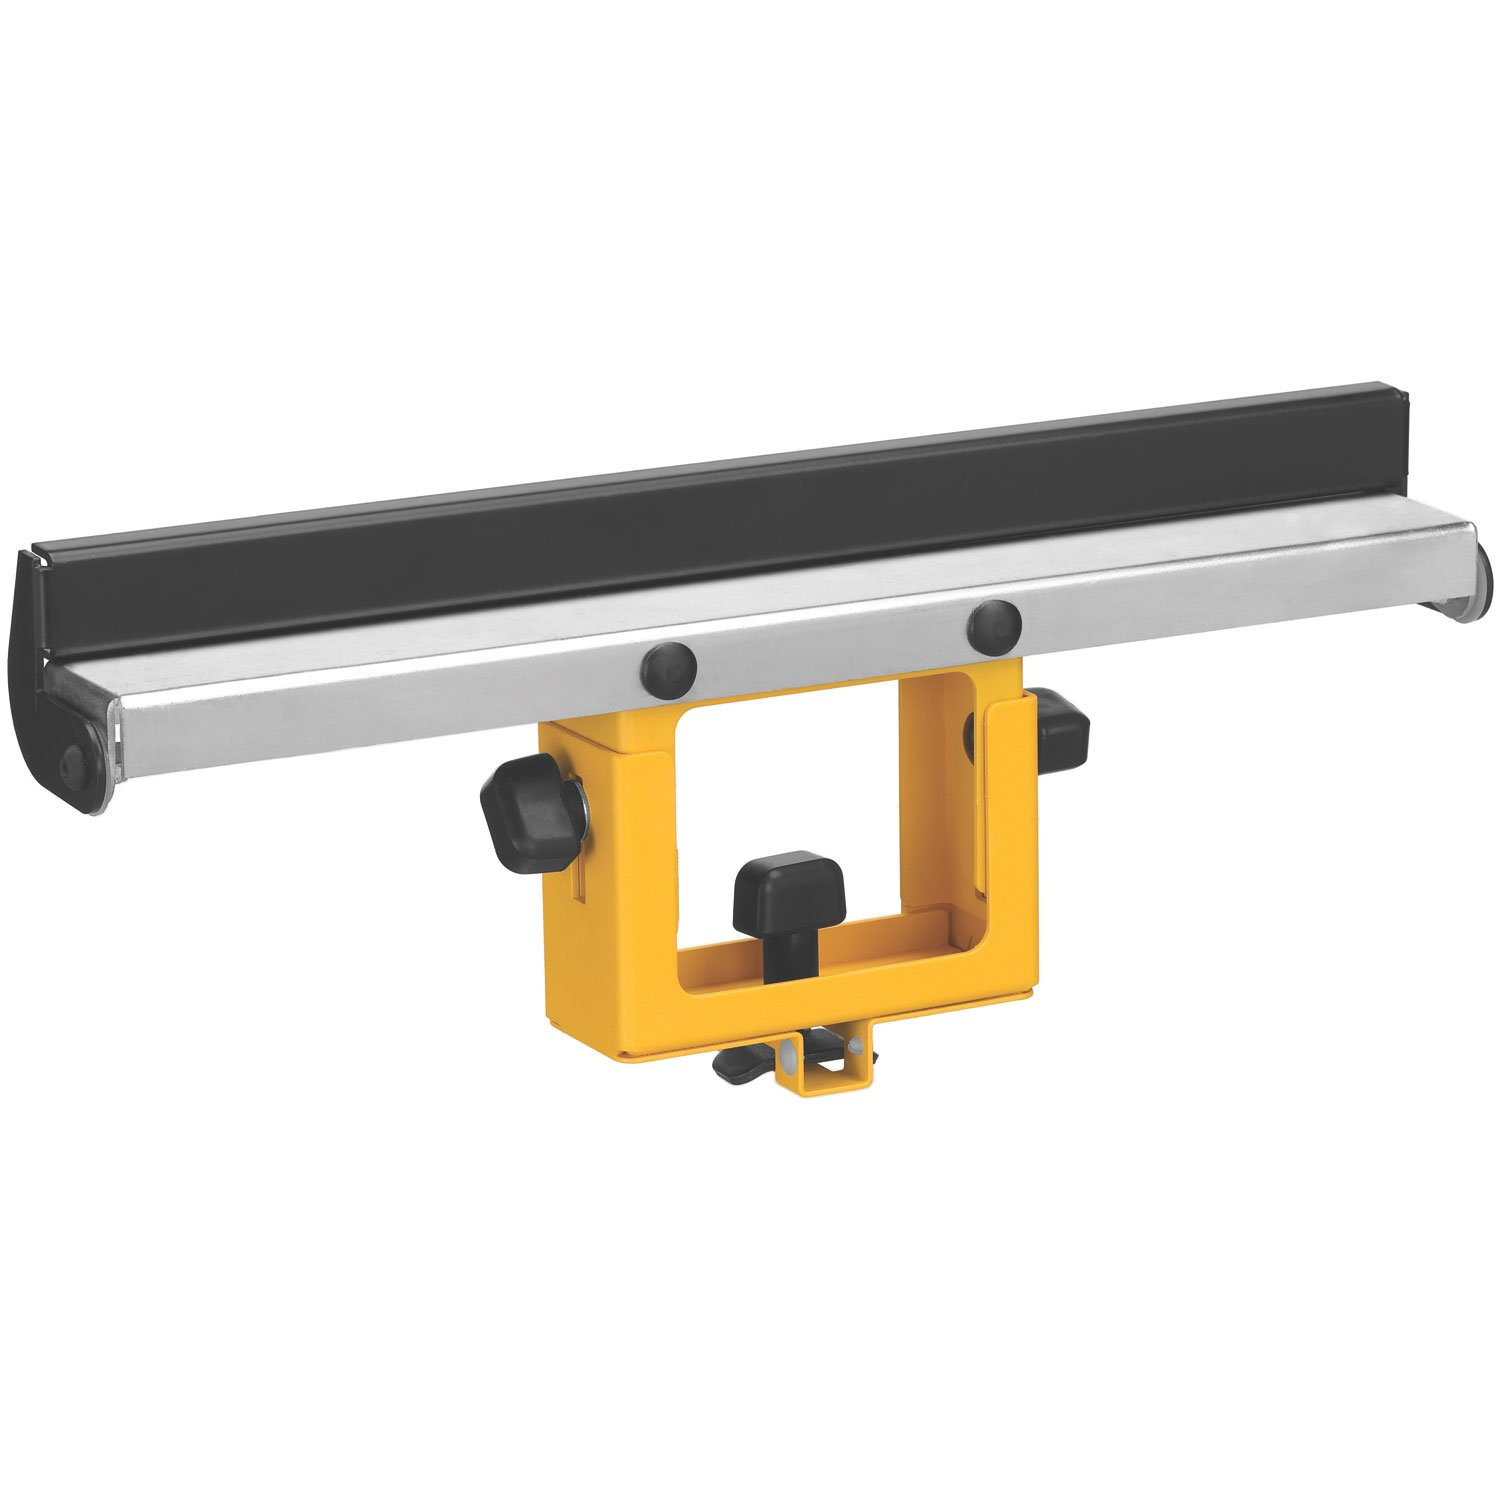 DEWALT DW7029 Wide Miter Saw Stand Material Support and Stop by DEWALT